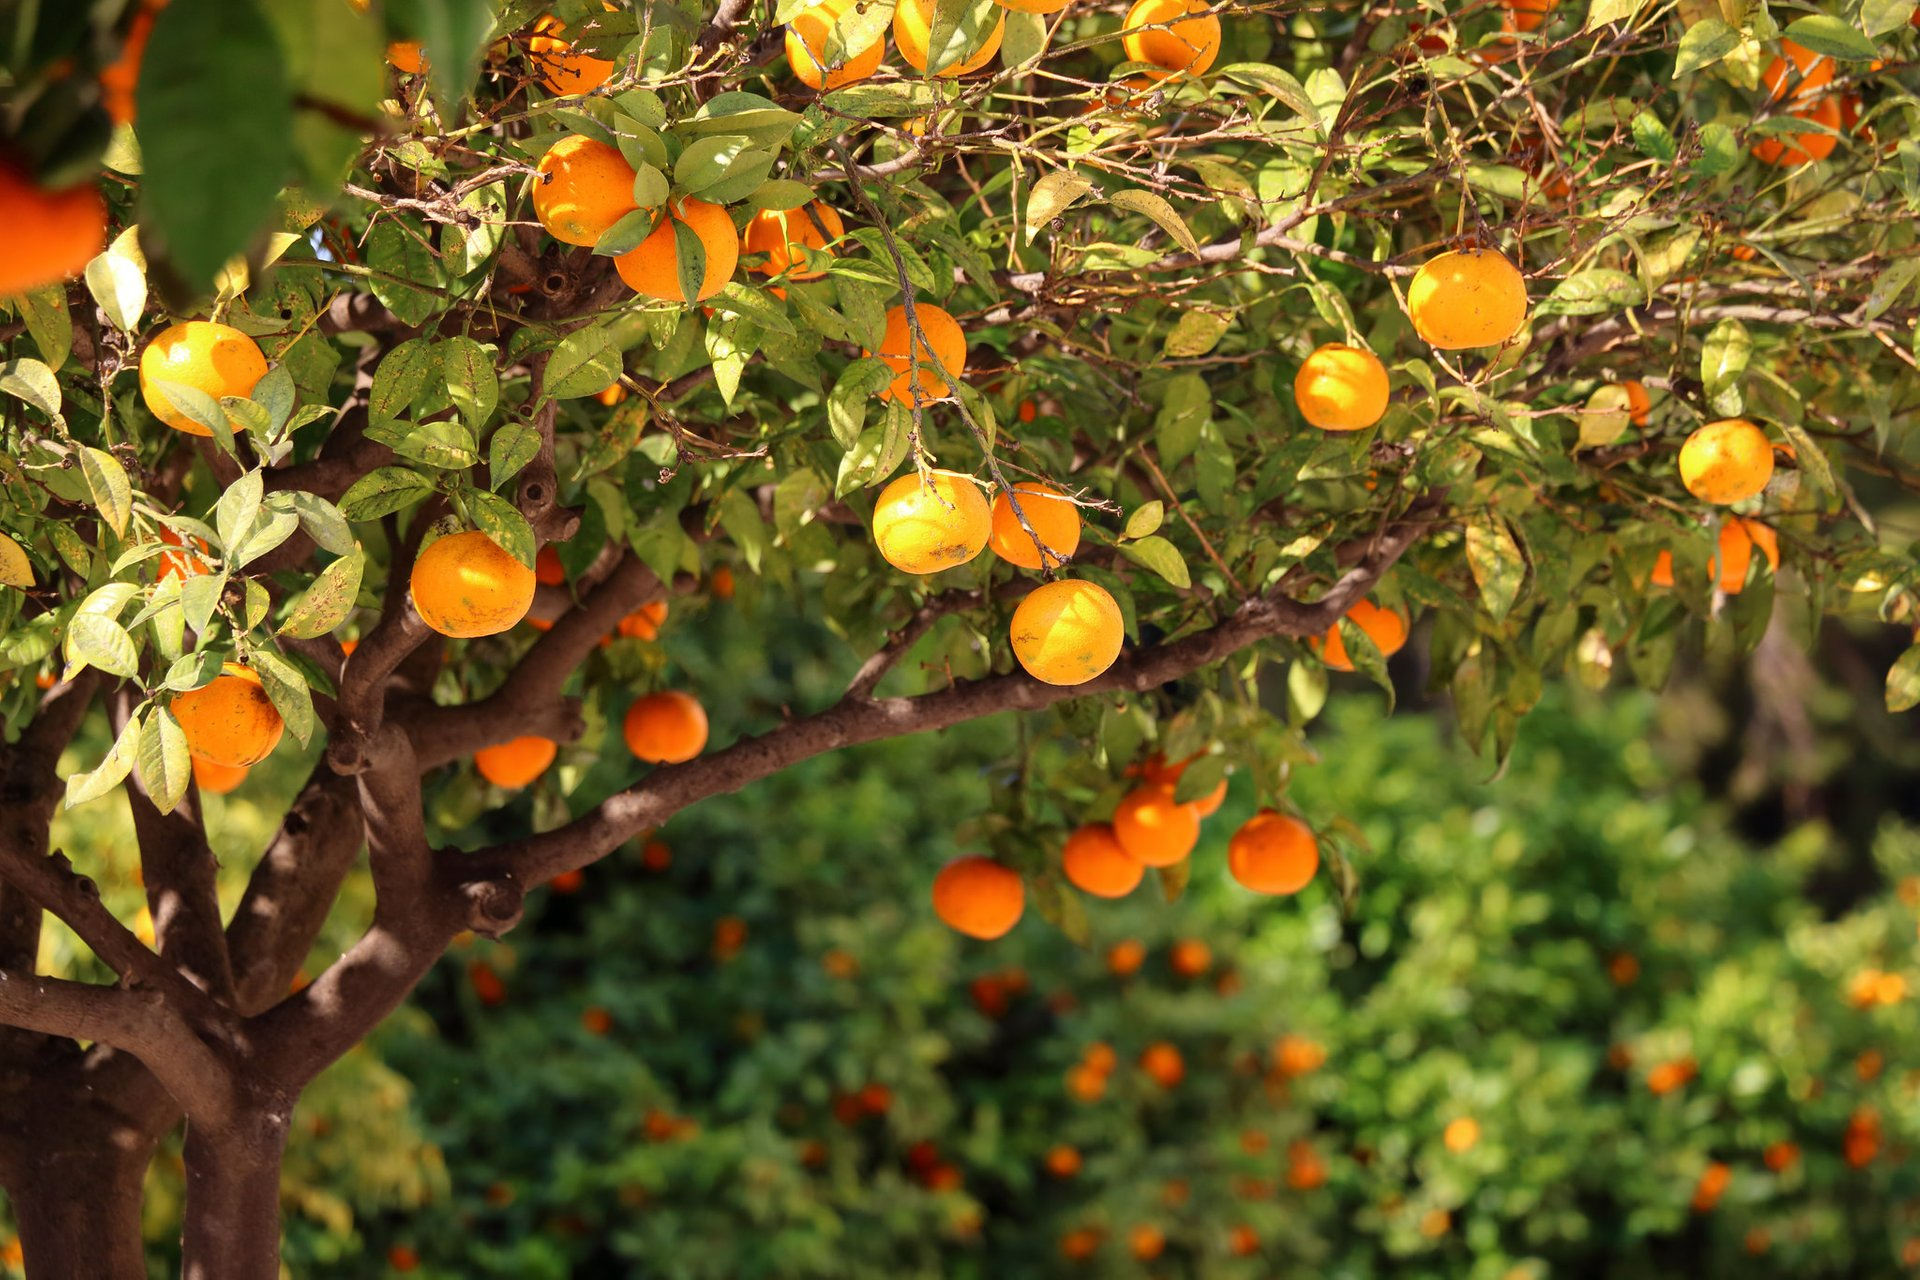 Oranges Season in Valencia - Best Time